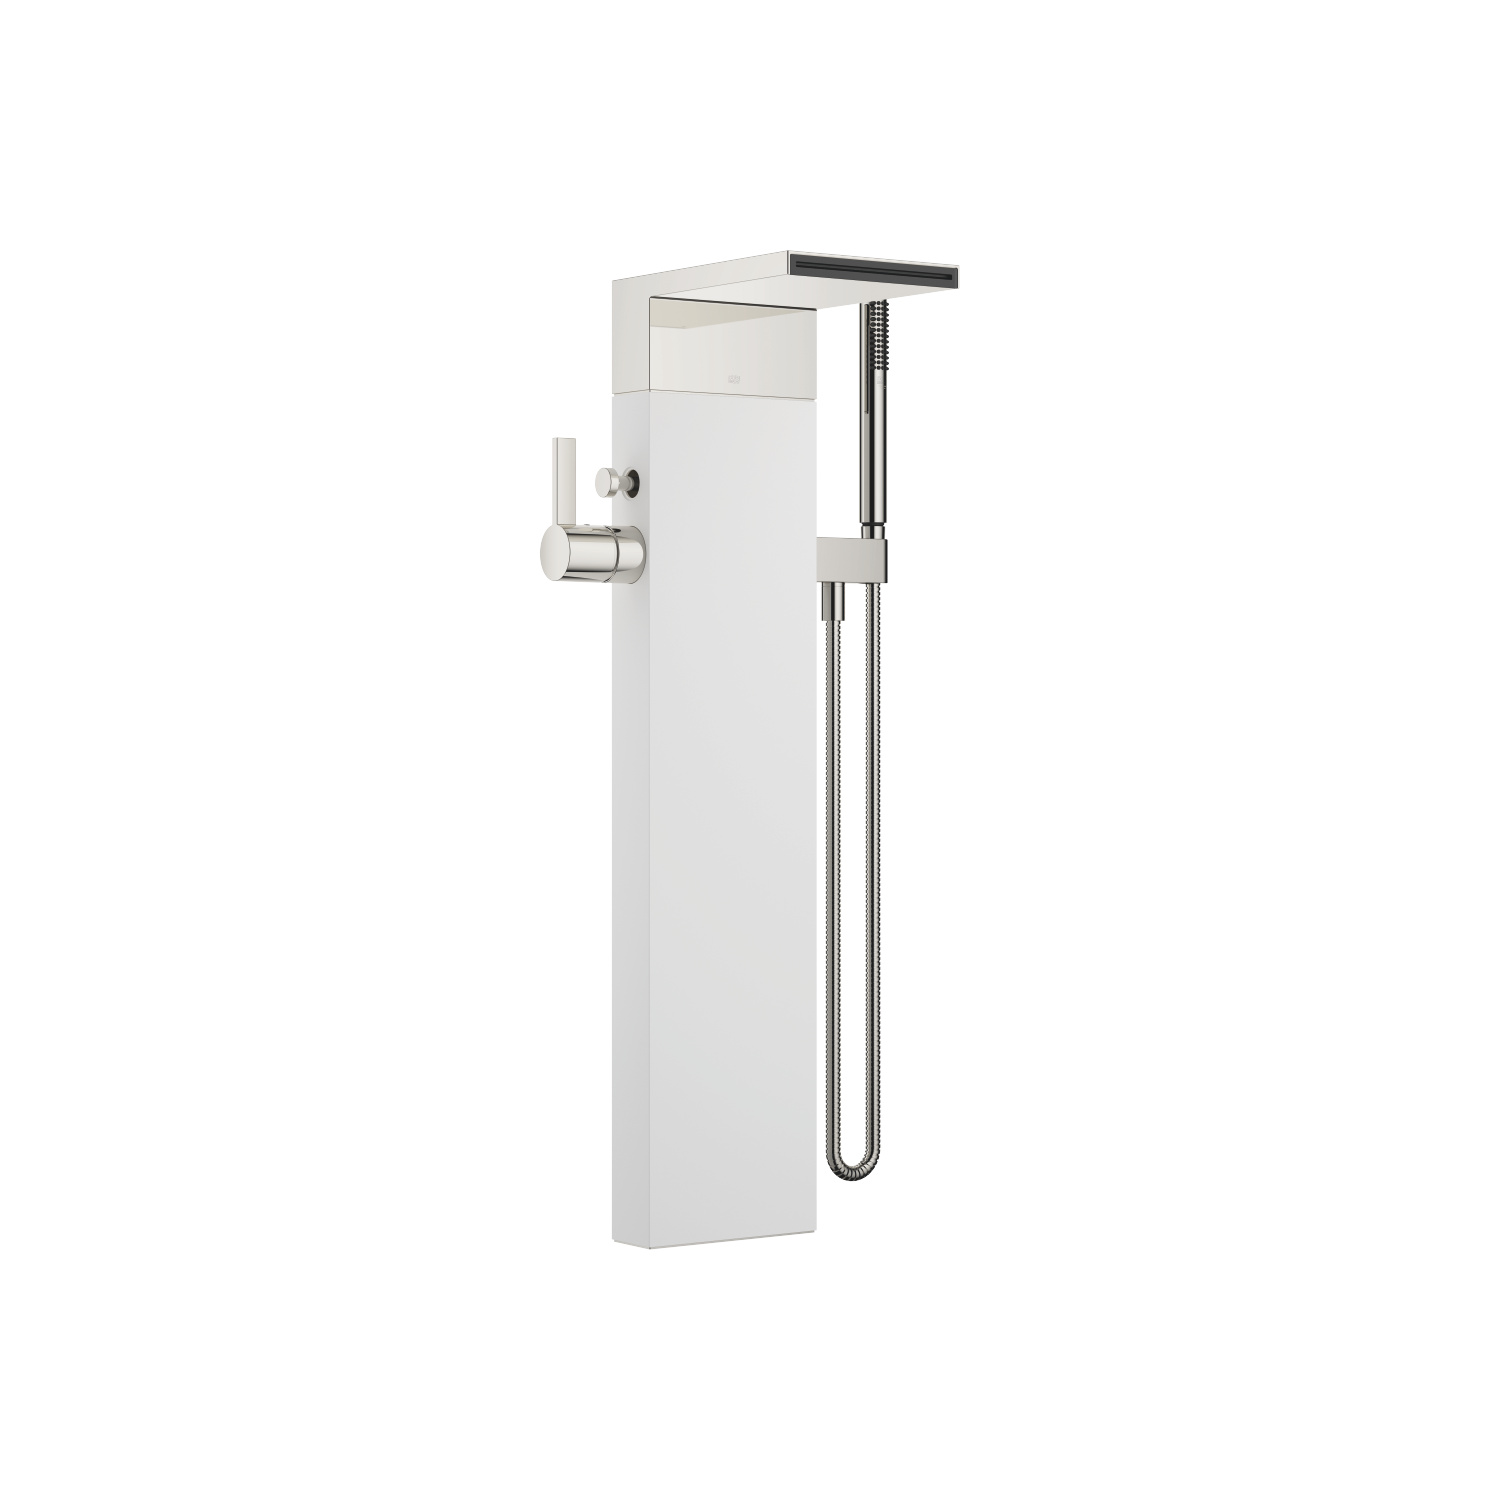 Single-lever bath mixer with cascade spout for free-standing assembly with hand shower set - platinum - 25 964 979-08